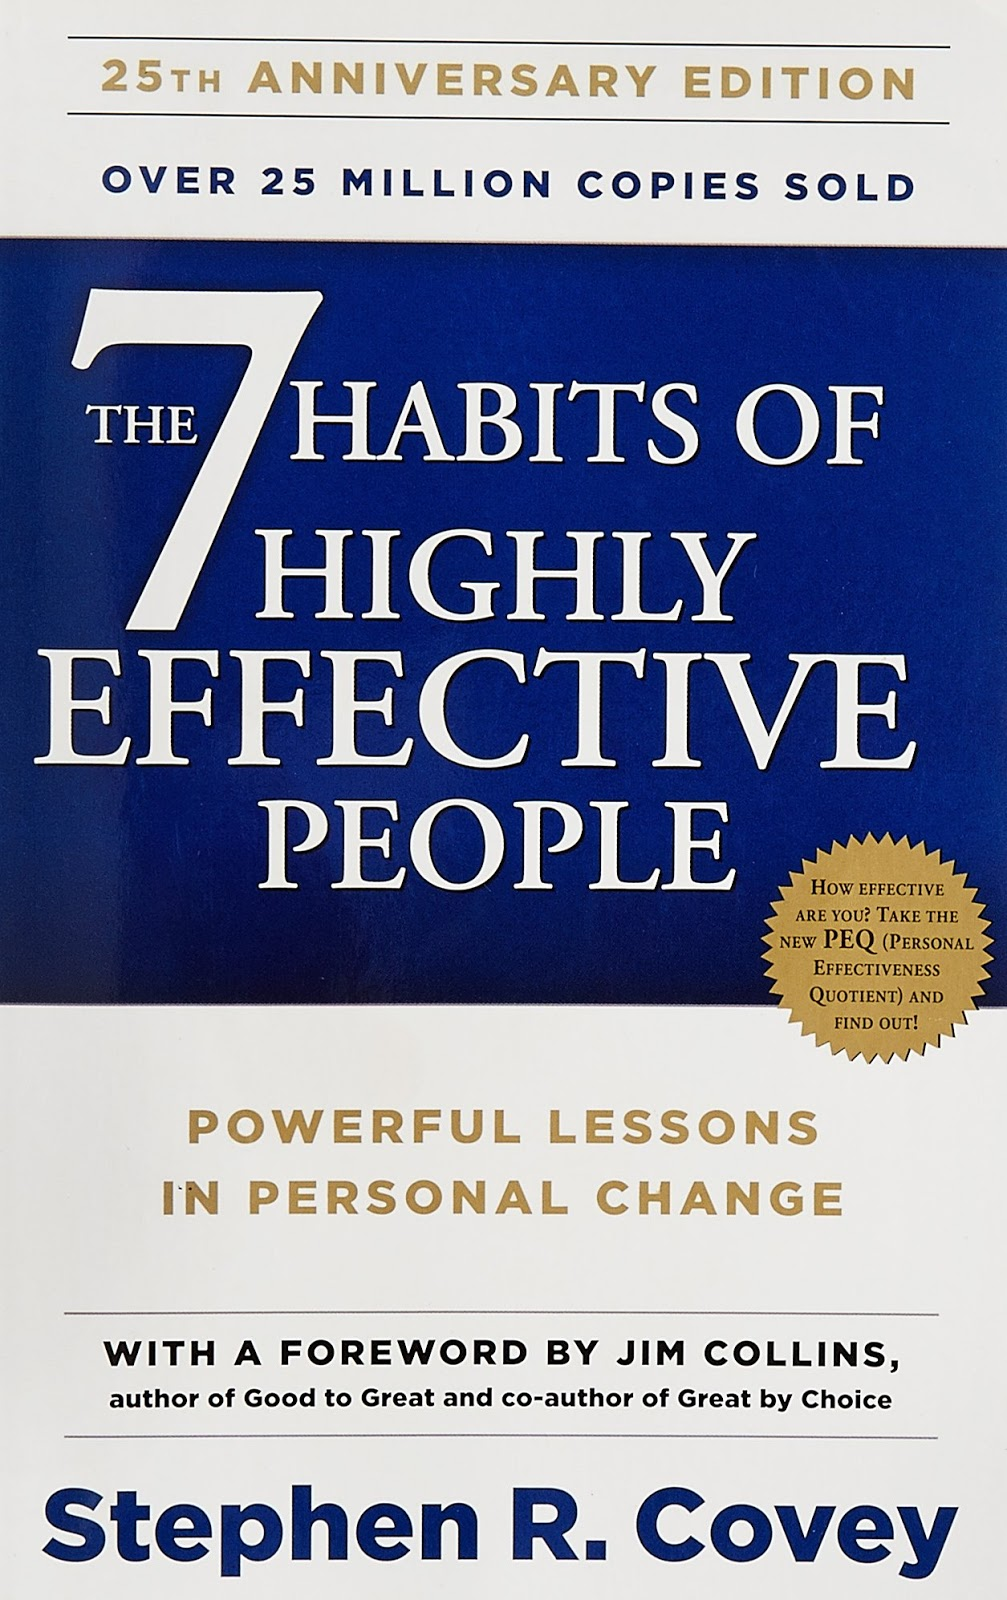 """The cover of Stephen Covey's book """"The 7 Habits of Highly Effective People."""""""